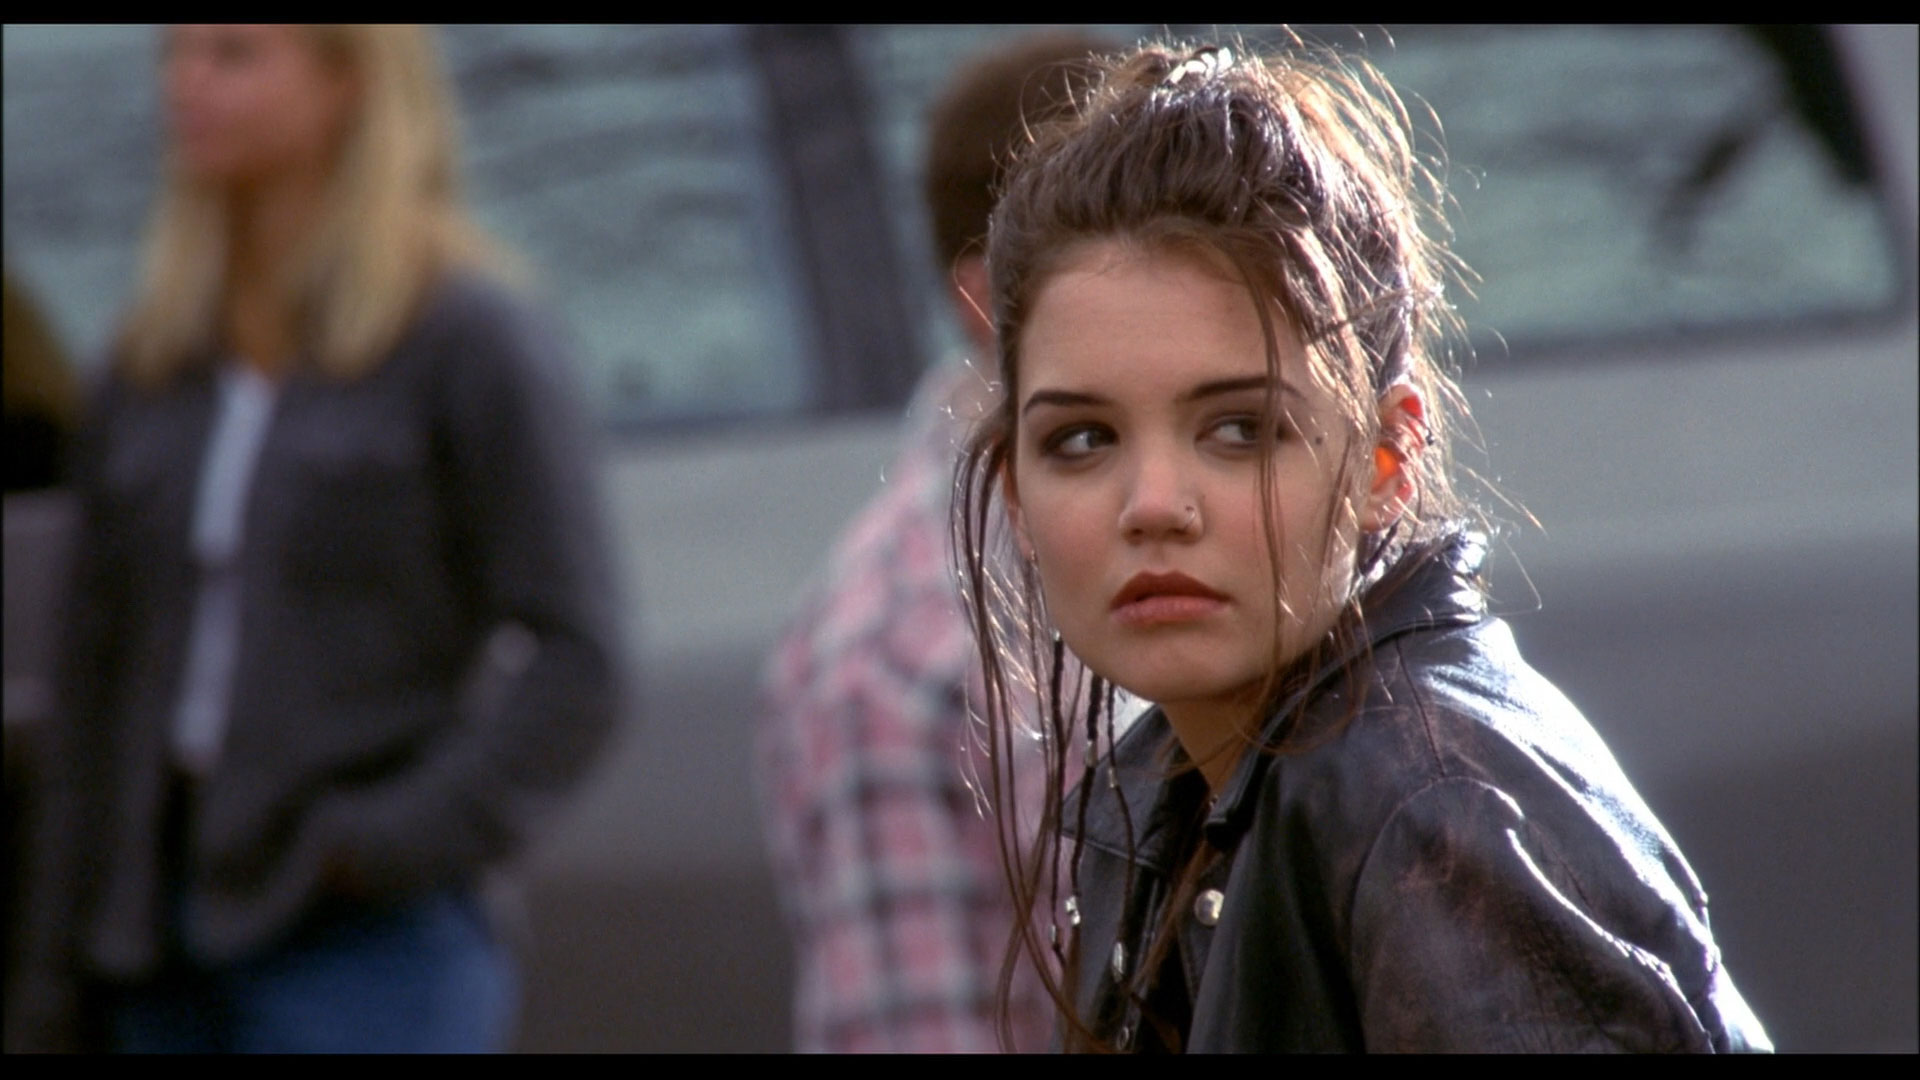 Disturbing Behavior - Katie Holmes